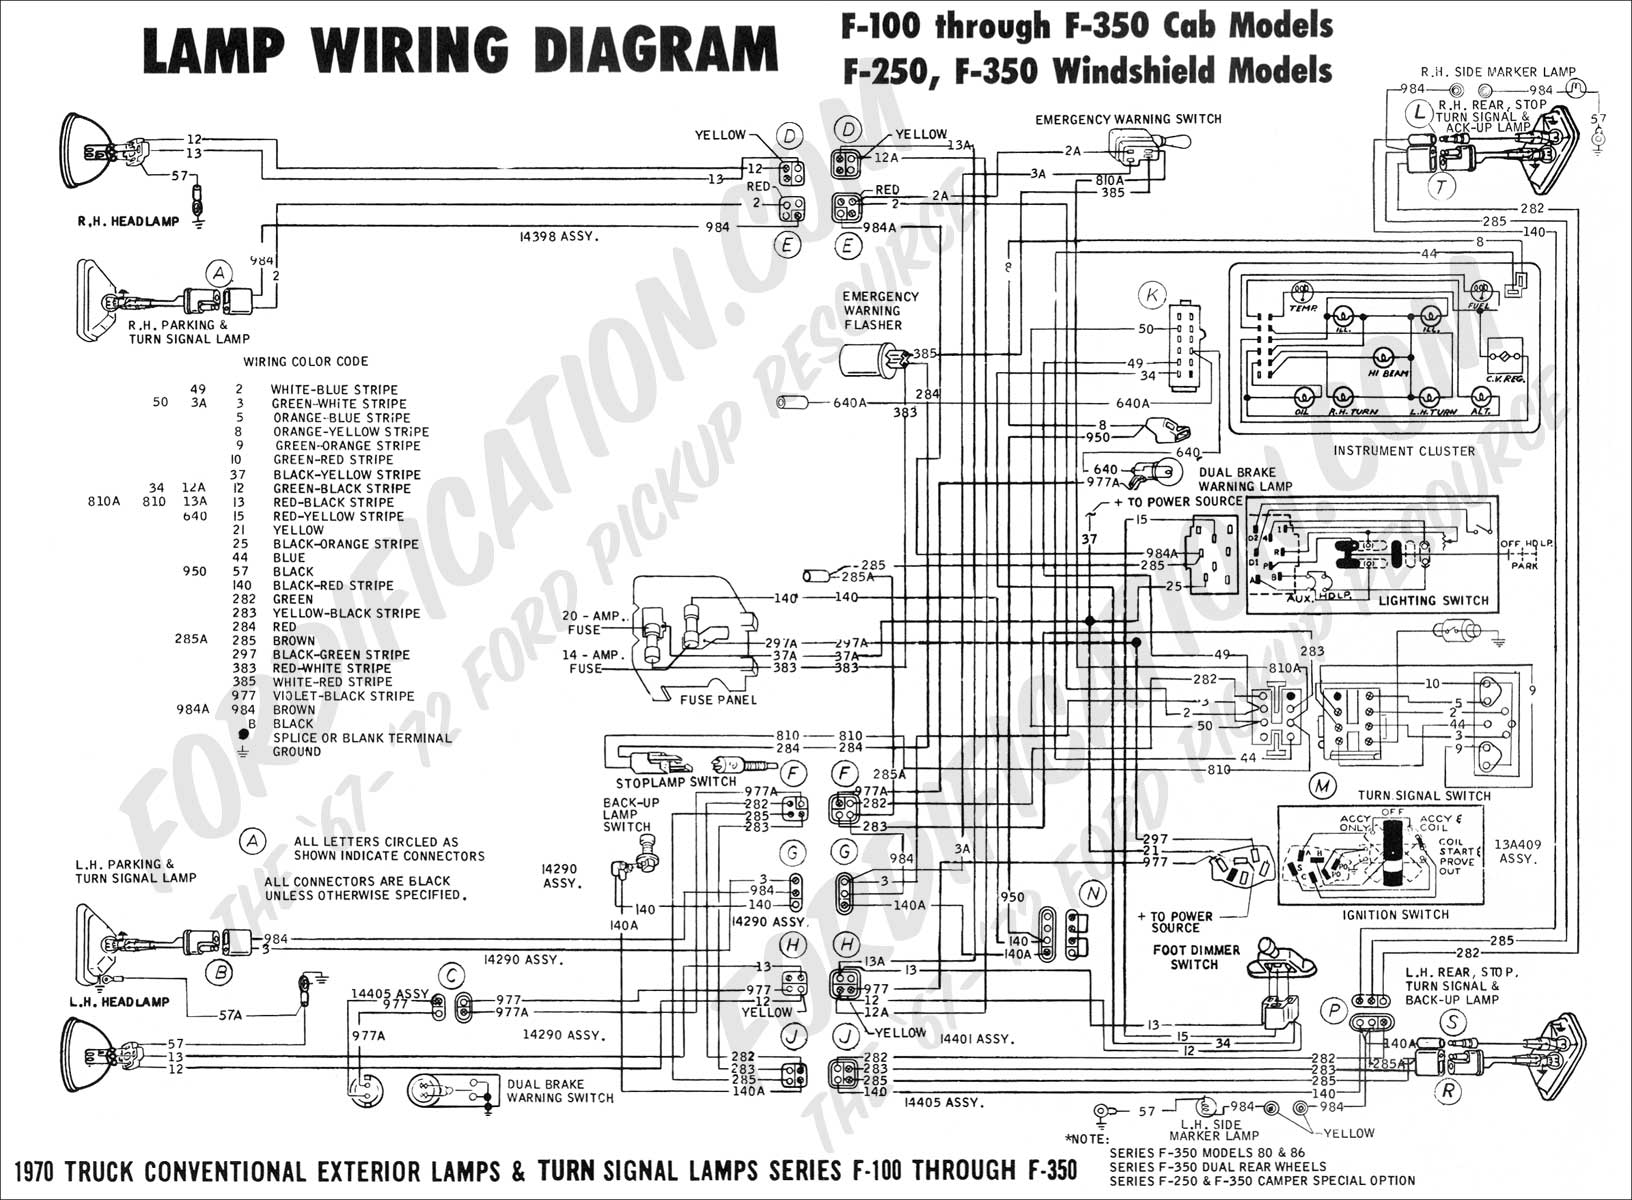 wiring diagram_70ext lights01 2002 ford f250 wiring diagram ford wiring diagrams for diy car 2002 ford f350 wiring diagram at nearapp.co